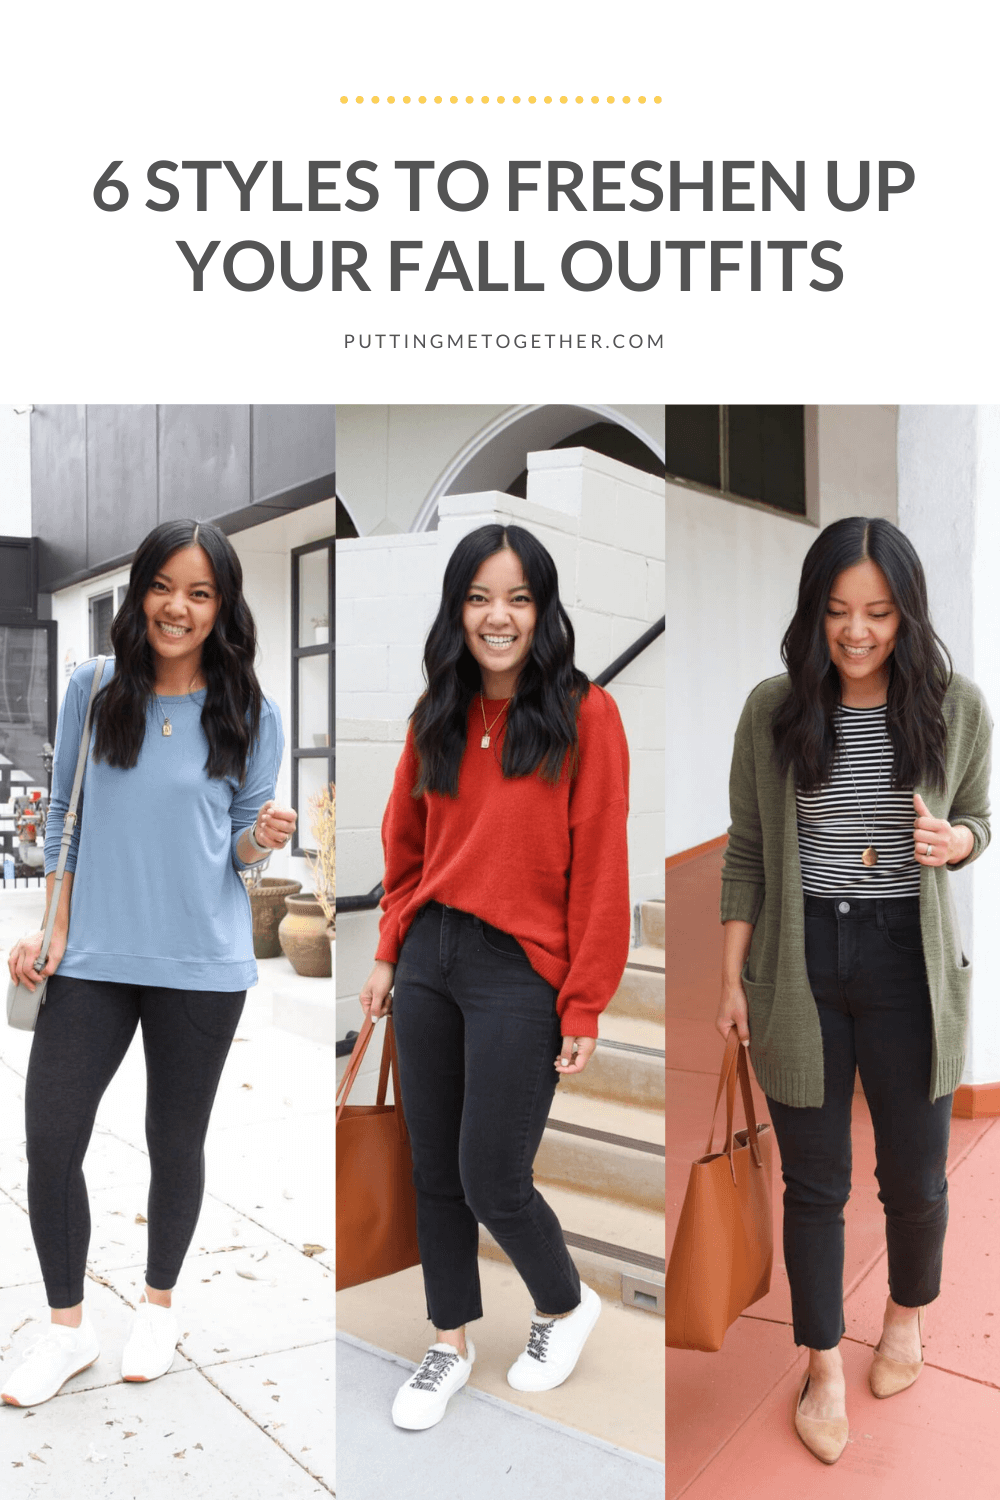 6 styles to freshen up your outfits in the fall